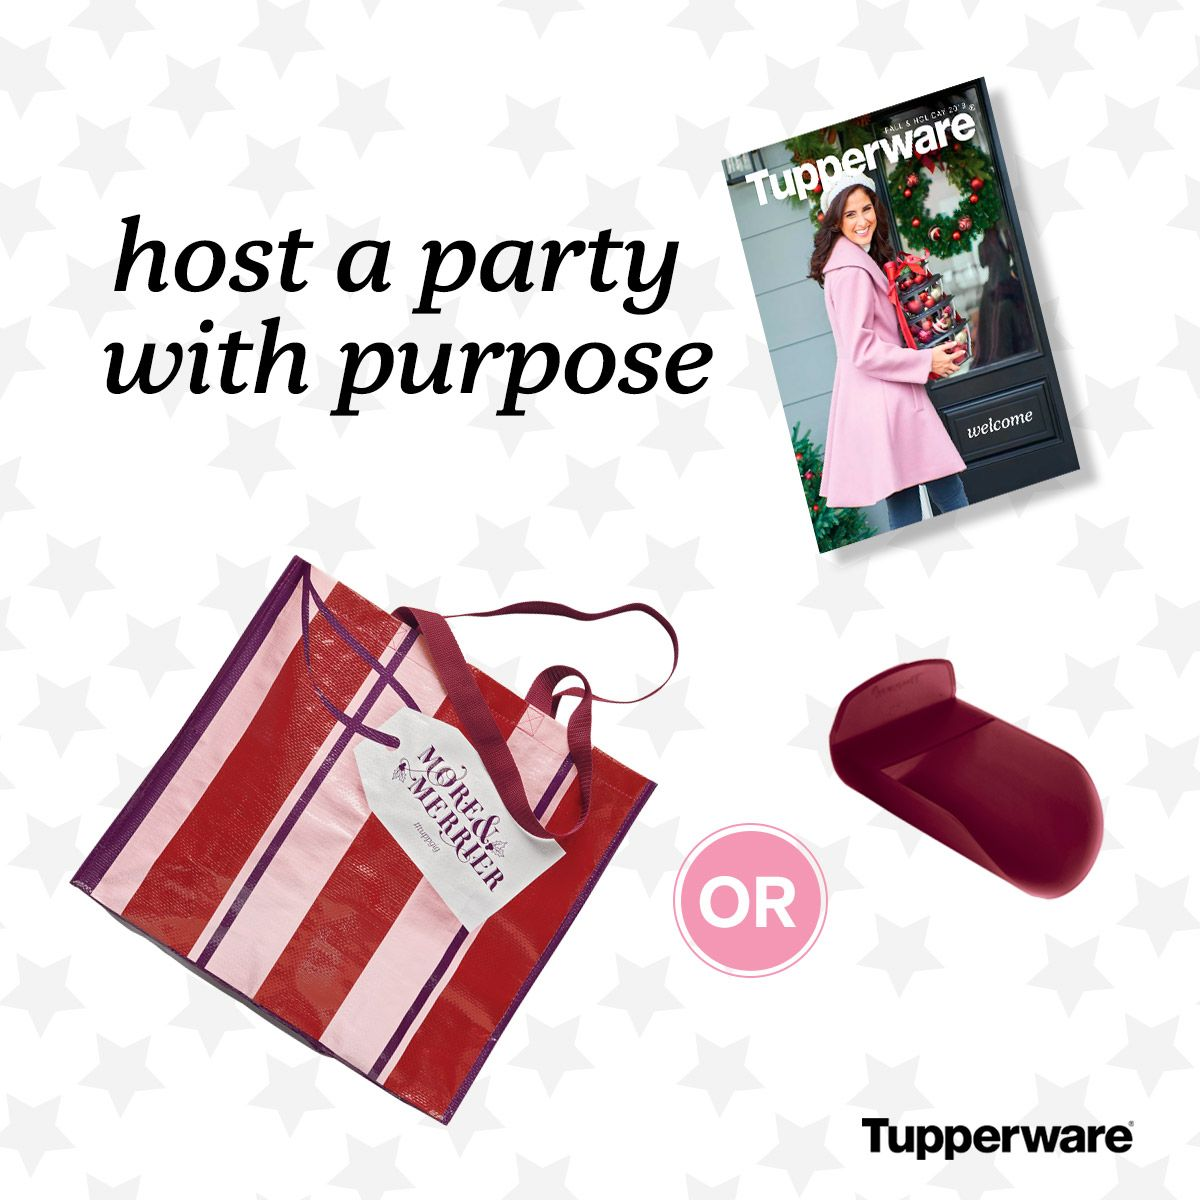 Host a party and get Tupperware products FREE! http